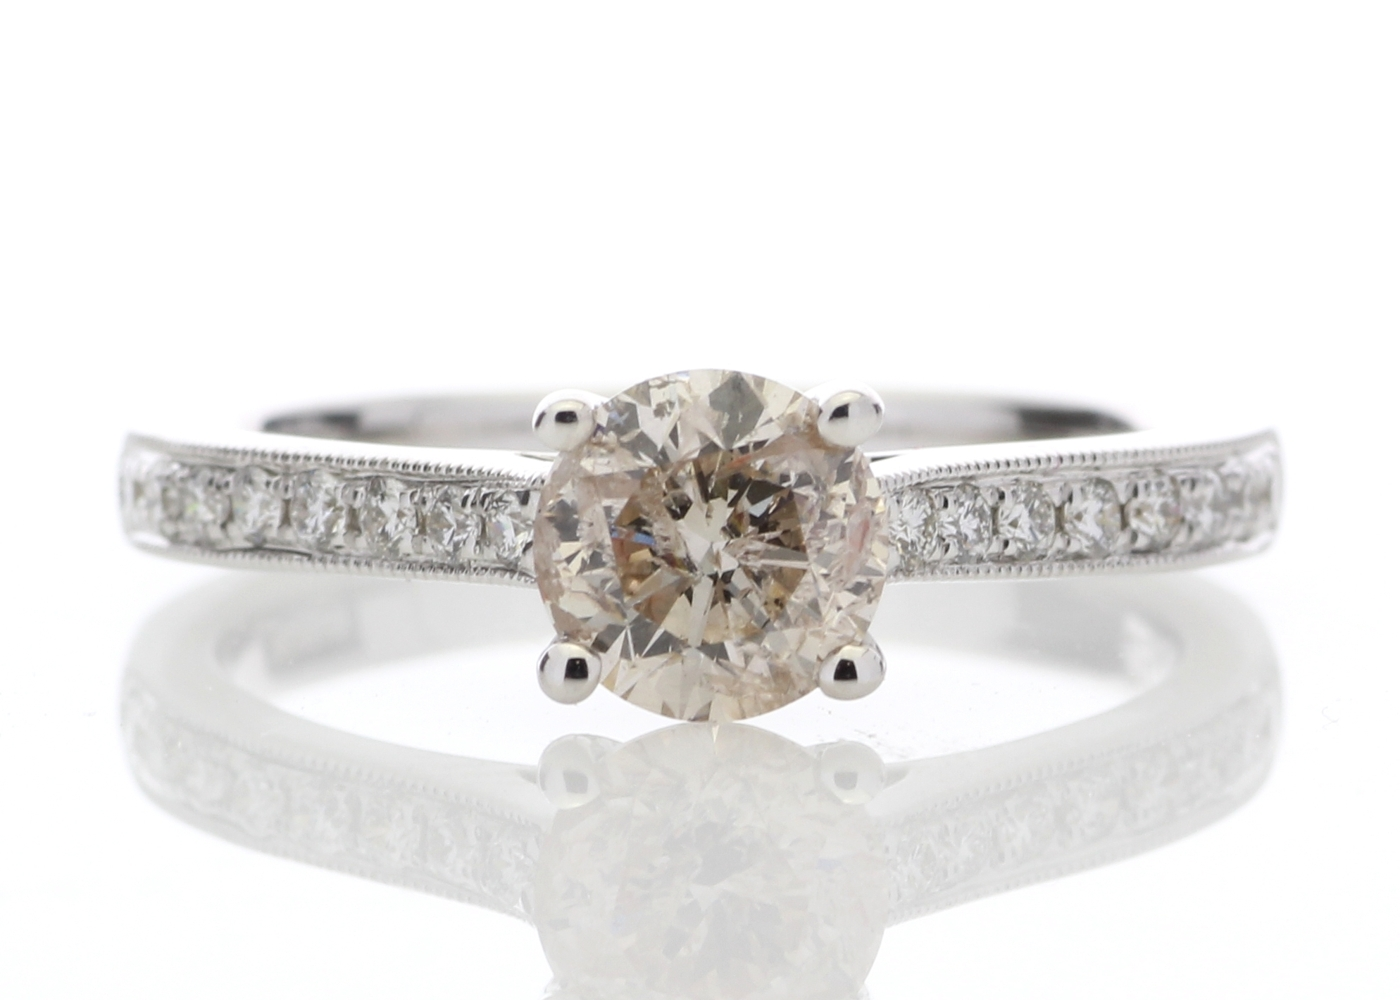 Lot 10 - 18ct White Gold Claw Set Diamond Ring 1.09 Carats